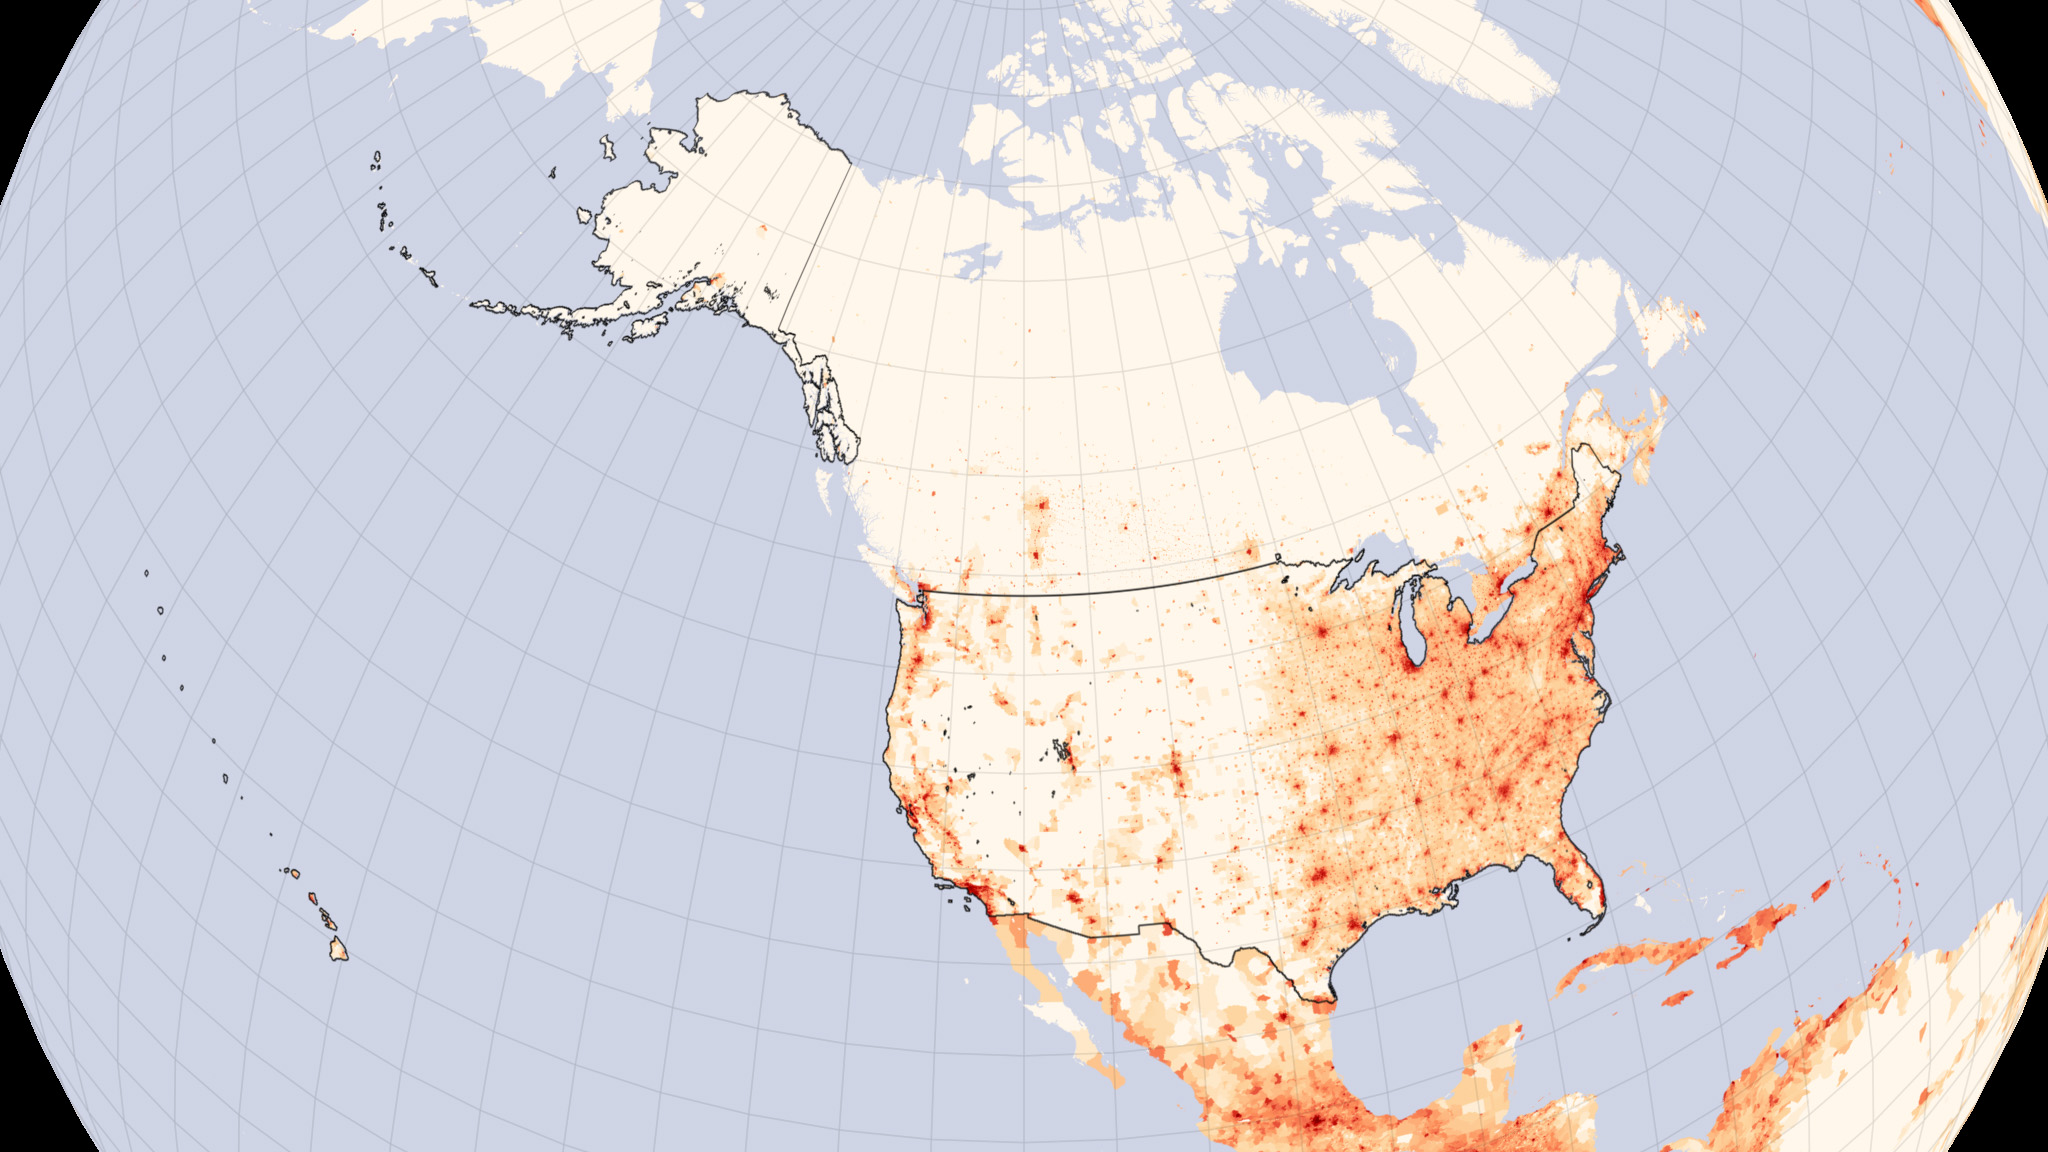 United States Population Density  Image Of The Day - Map of the us population density